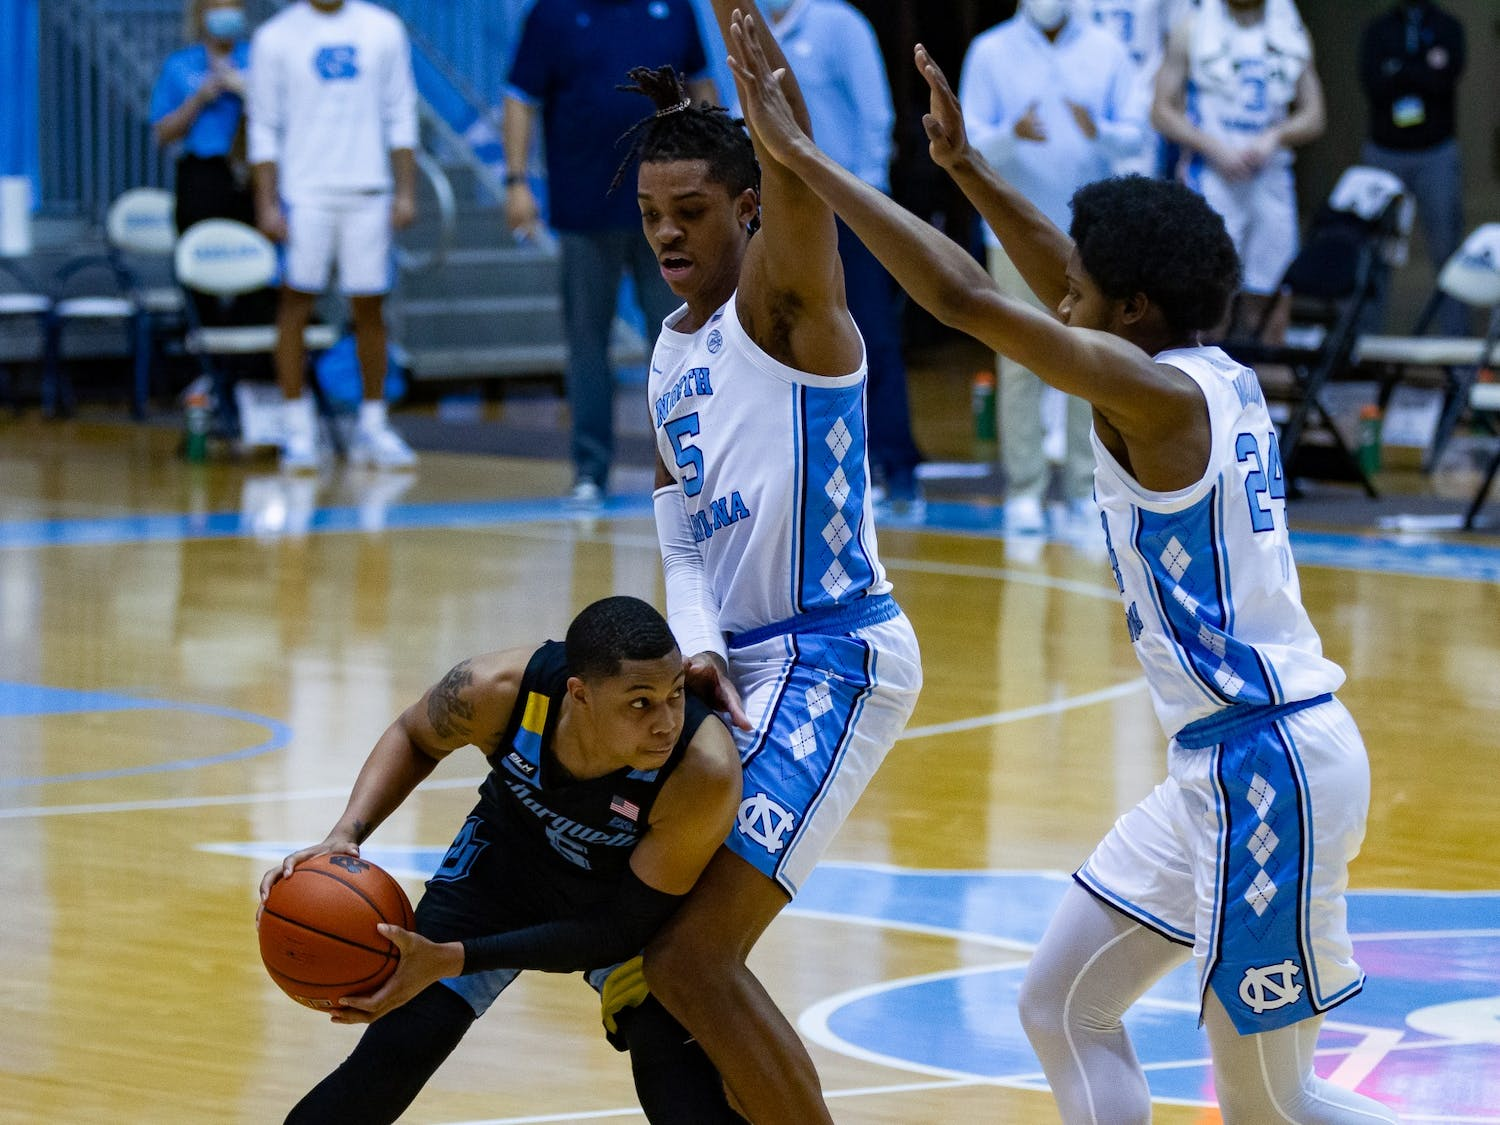 UNC sophomore center Armando Bacot (5) and first year guard Kerwin Walton (24) attempt to defend against Marquette redshirt junior guard Greg Elliot (5) during a game in the Smith Center on Wednesday, Feb. 24, 202. UNC lost to Marquette 83-70.